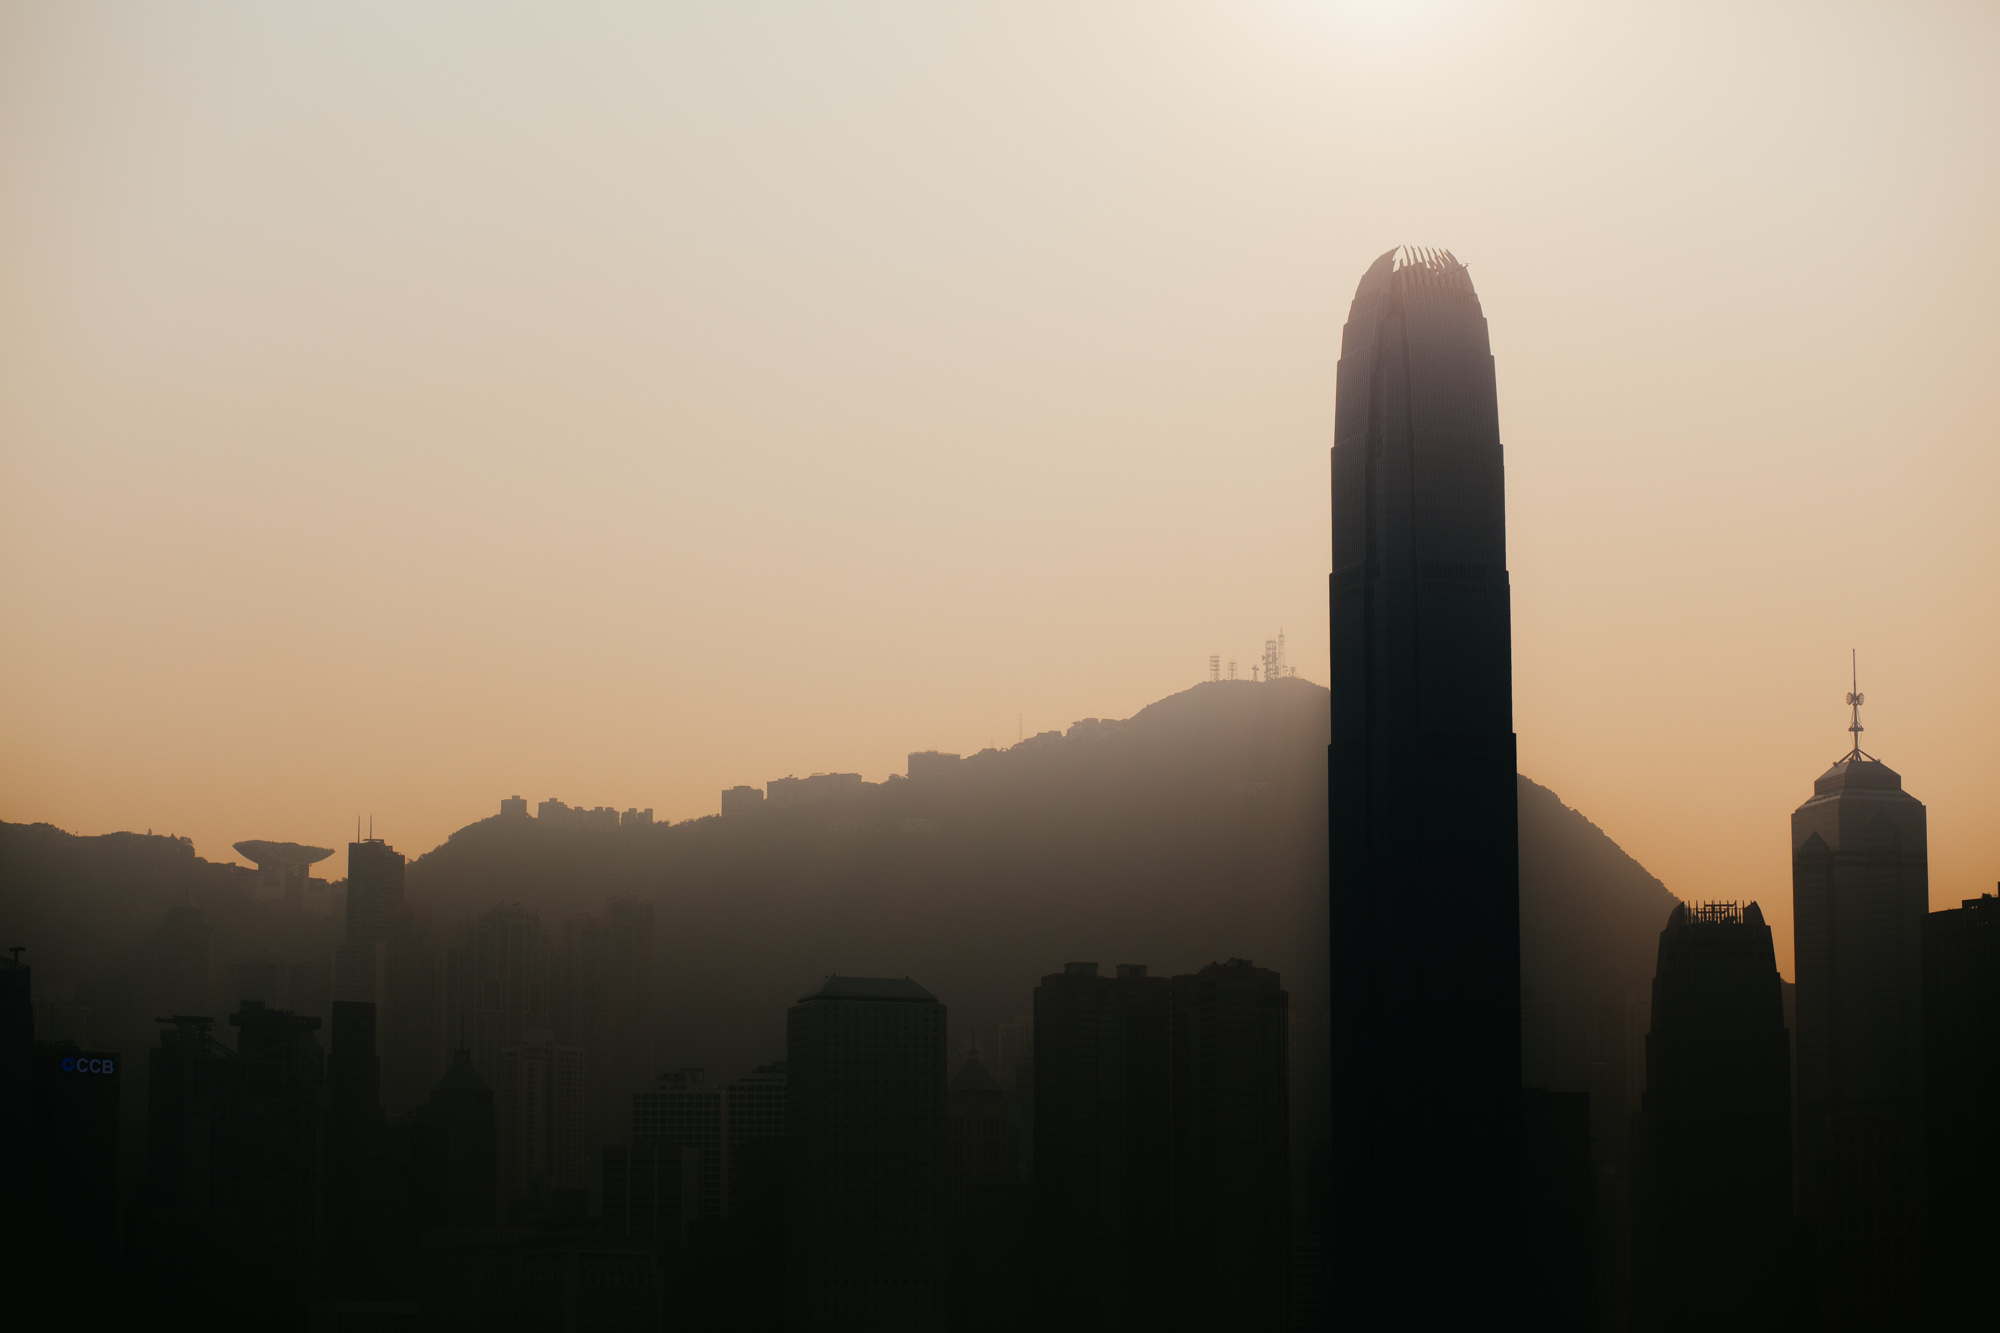 """This monstrous building was once the tallest building towering over Hong Kong, until the International Commerce Centre in Kowloon dethroned it. Now, this building is commonly referred to as """"the building that was in Batman""""."""